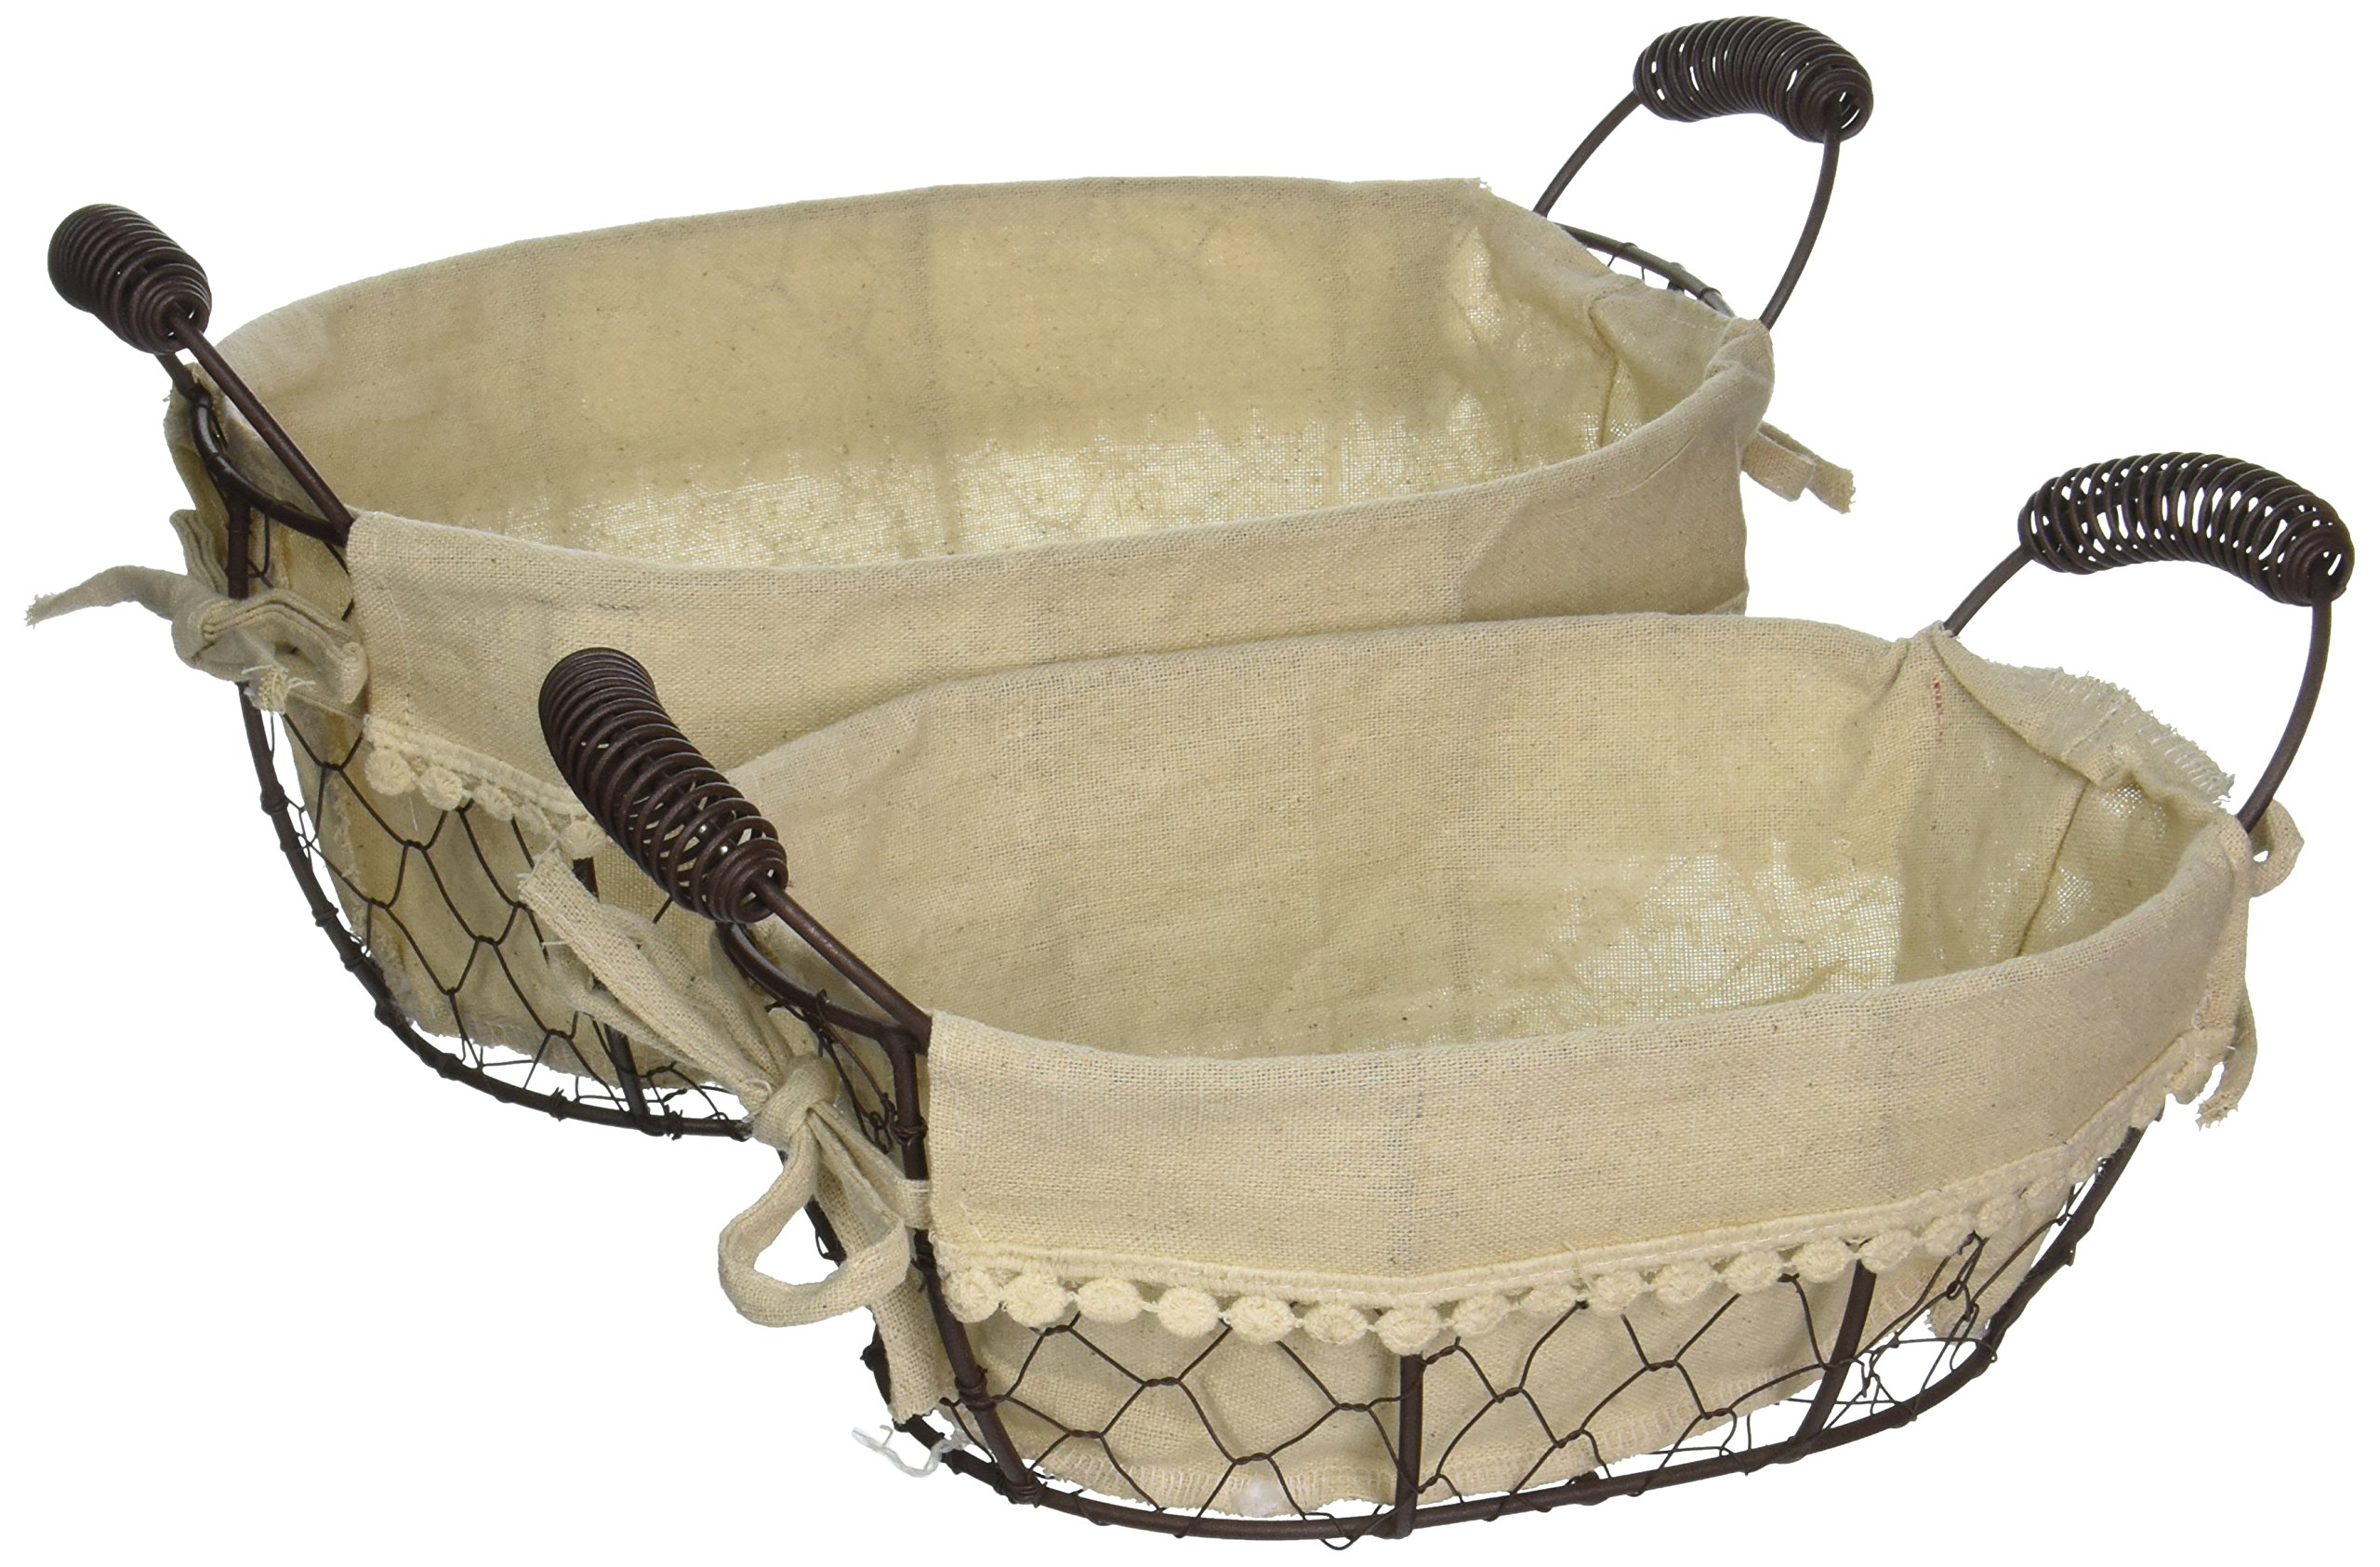 Blossom Bucket 131-36406 Oval Fabric Wire Baskets with Handles (Set of 2), 11-3/4 x 7''